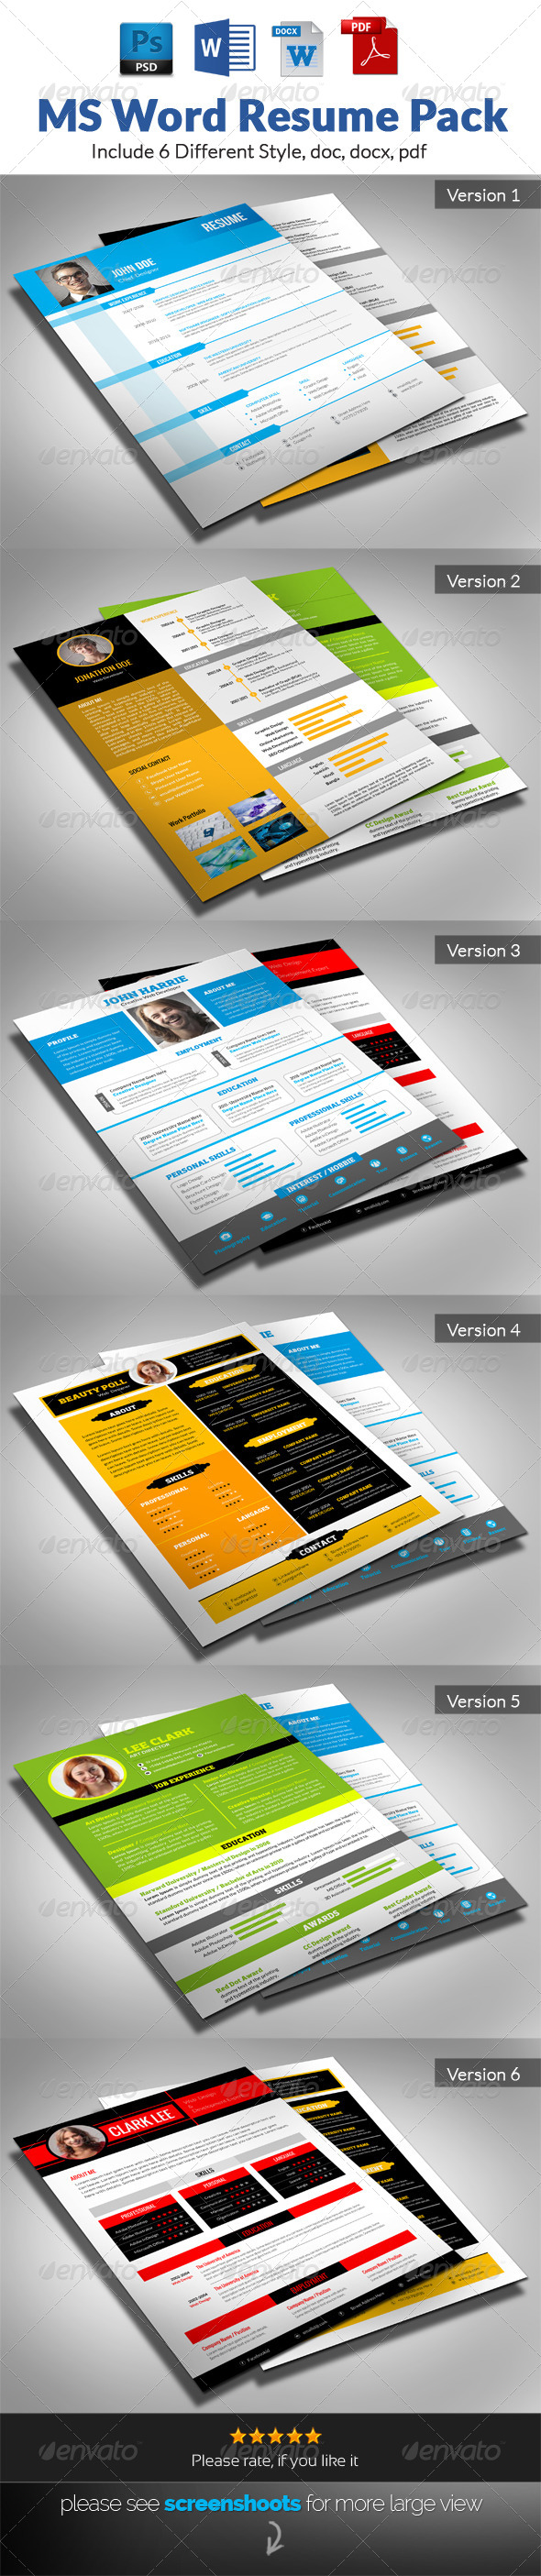 GraphicRiver MS Word Resume Pack 7352592